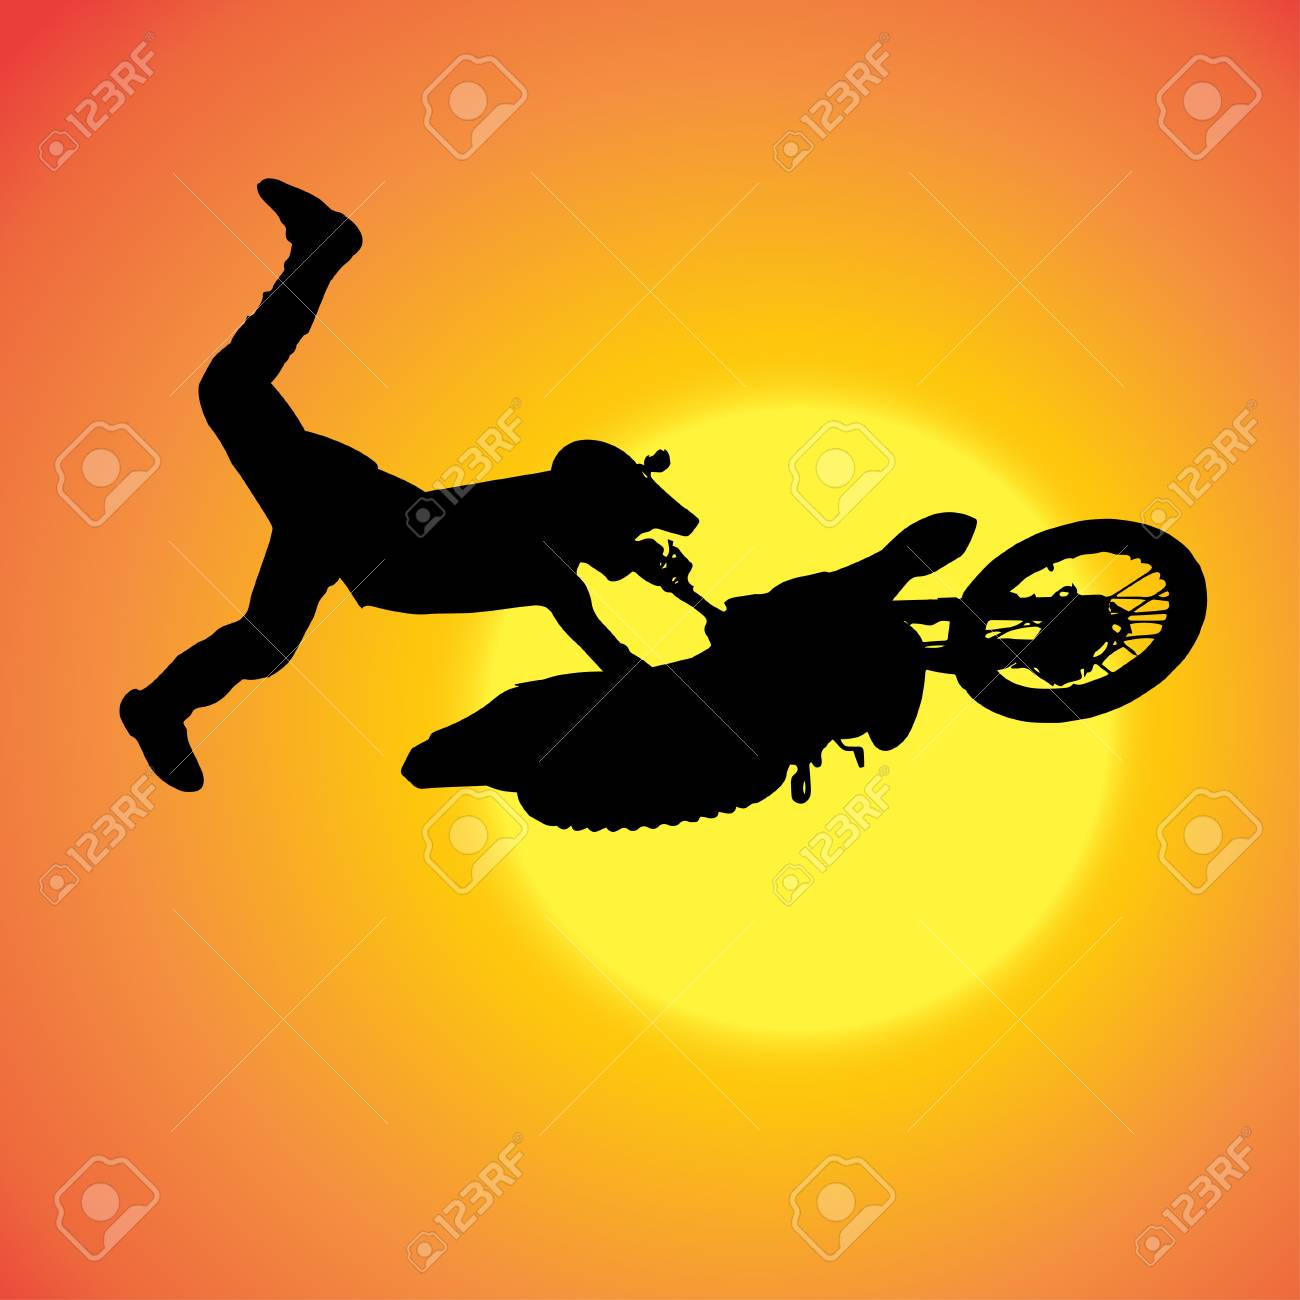 silhouette of extreme jumps on a motorbike. Stock Vector - 27986104